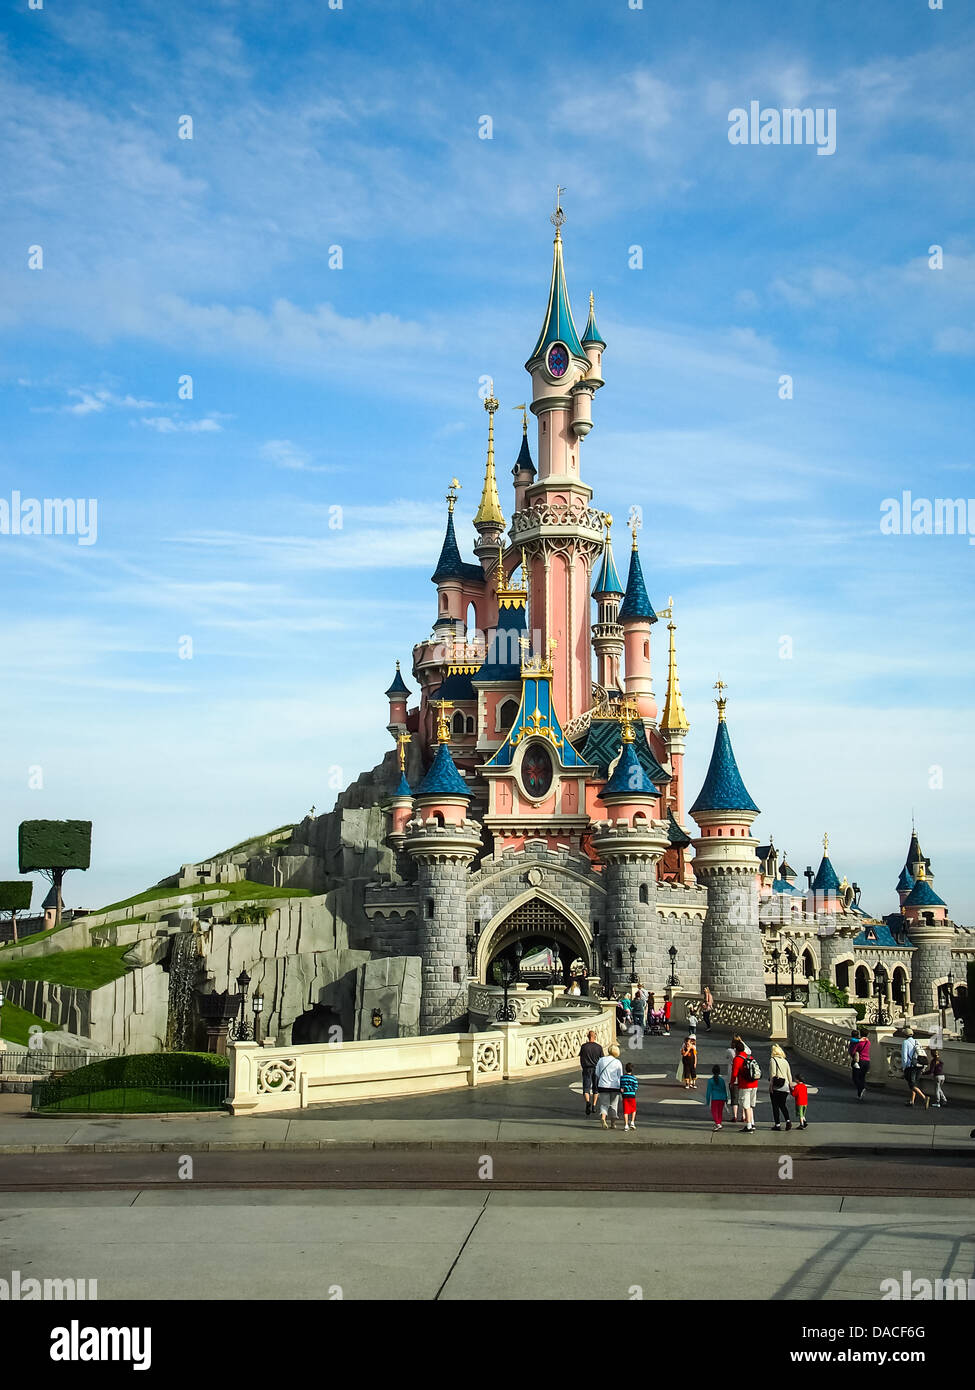 Sleeping Beauty's castle at Disneyland Paris, France. - Stock Image